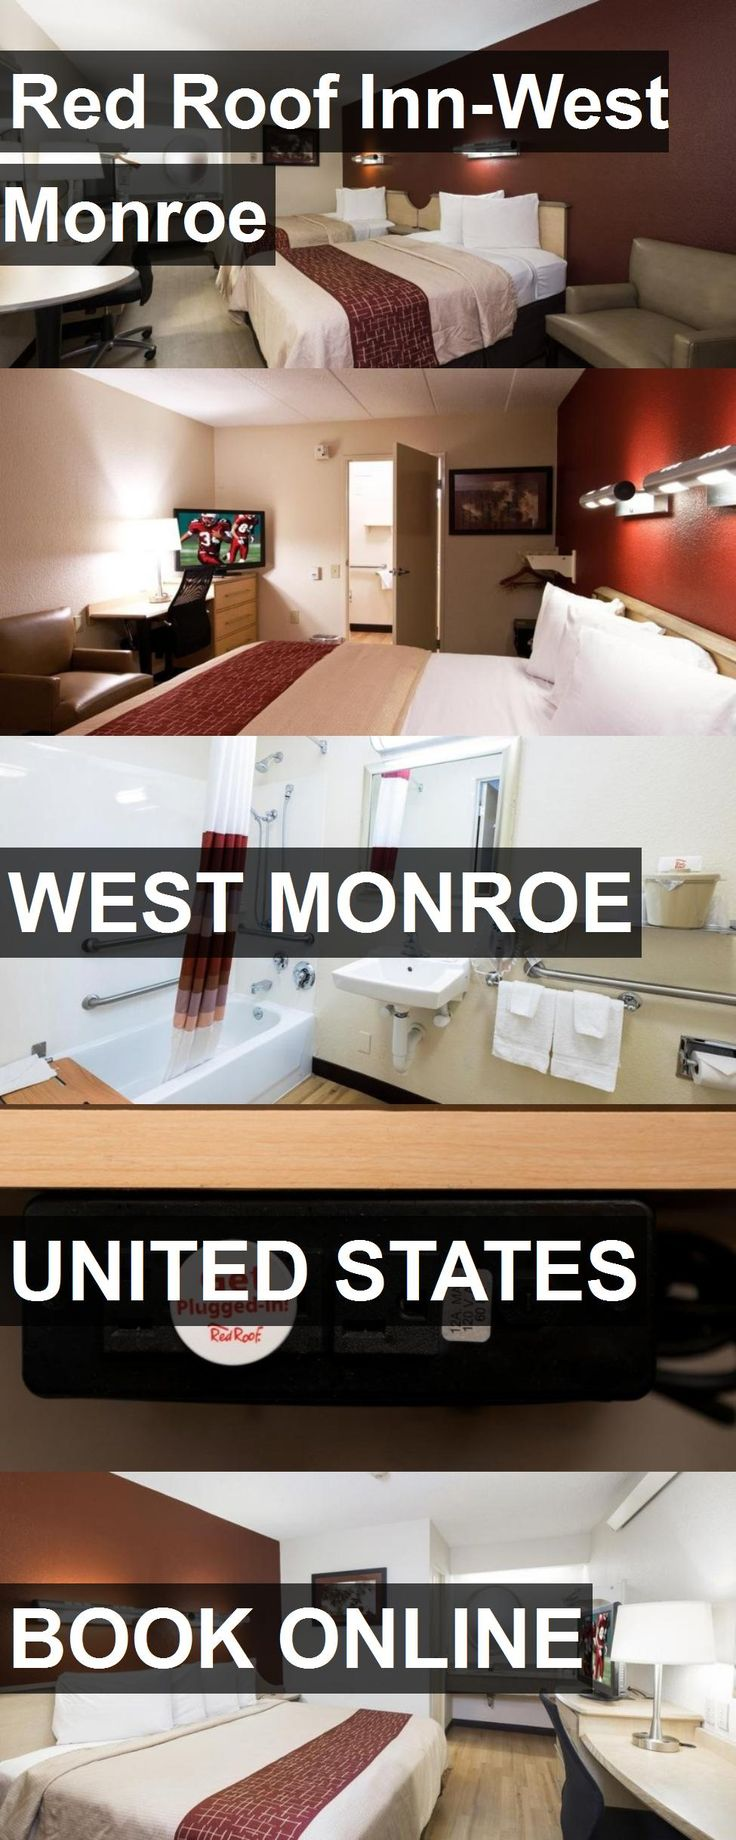 Hotel Red Roof Inn-West Monroe in West Monroe, United States. For more information, photos, reviews and best prices please follow the link. #UnitedStates #WestMonroe #RedRoofInn-WestMonroe #hotel #travel #vacation